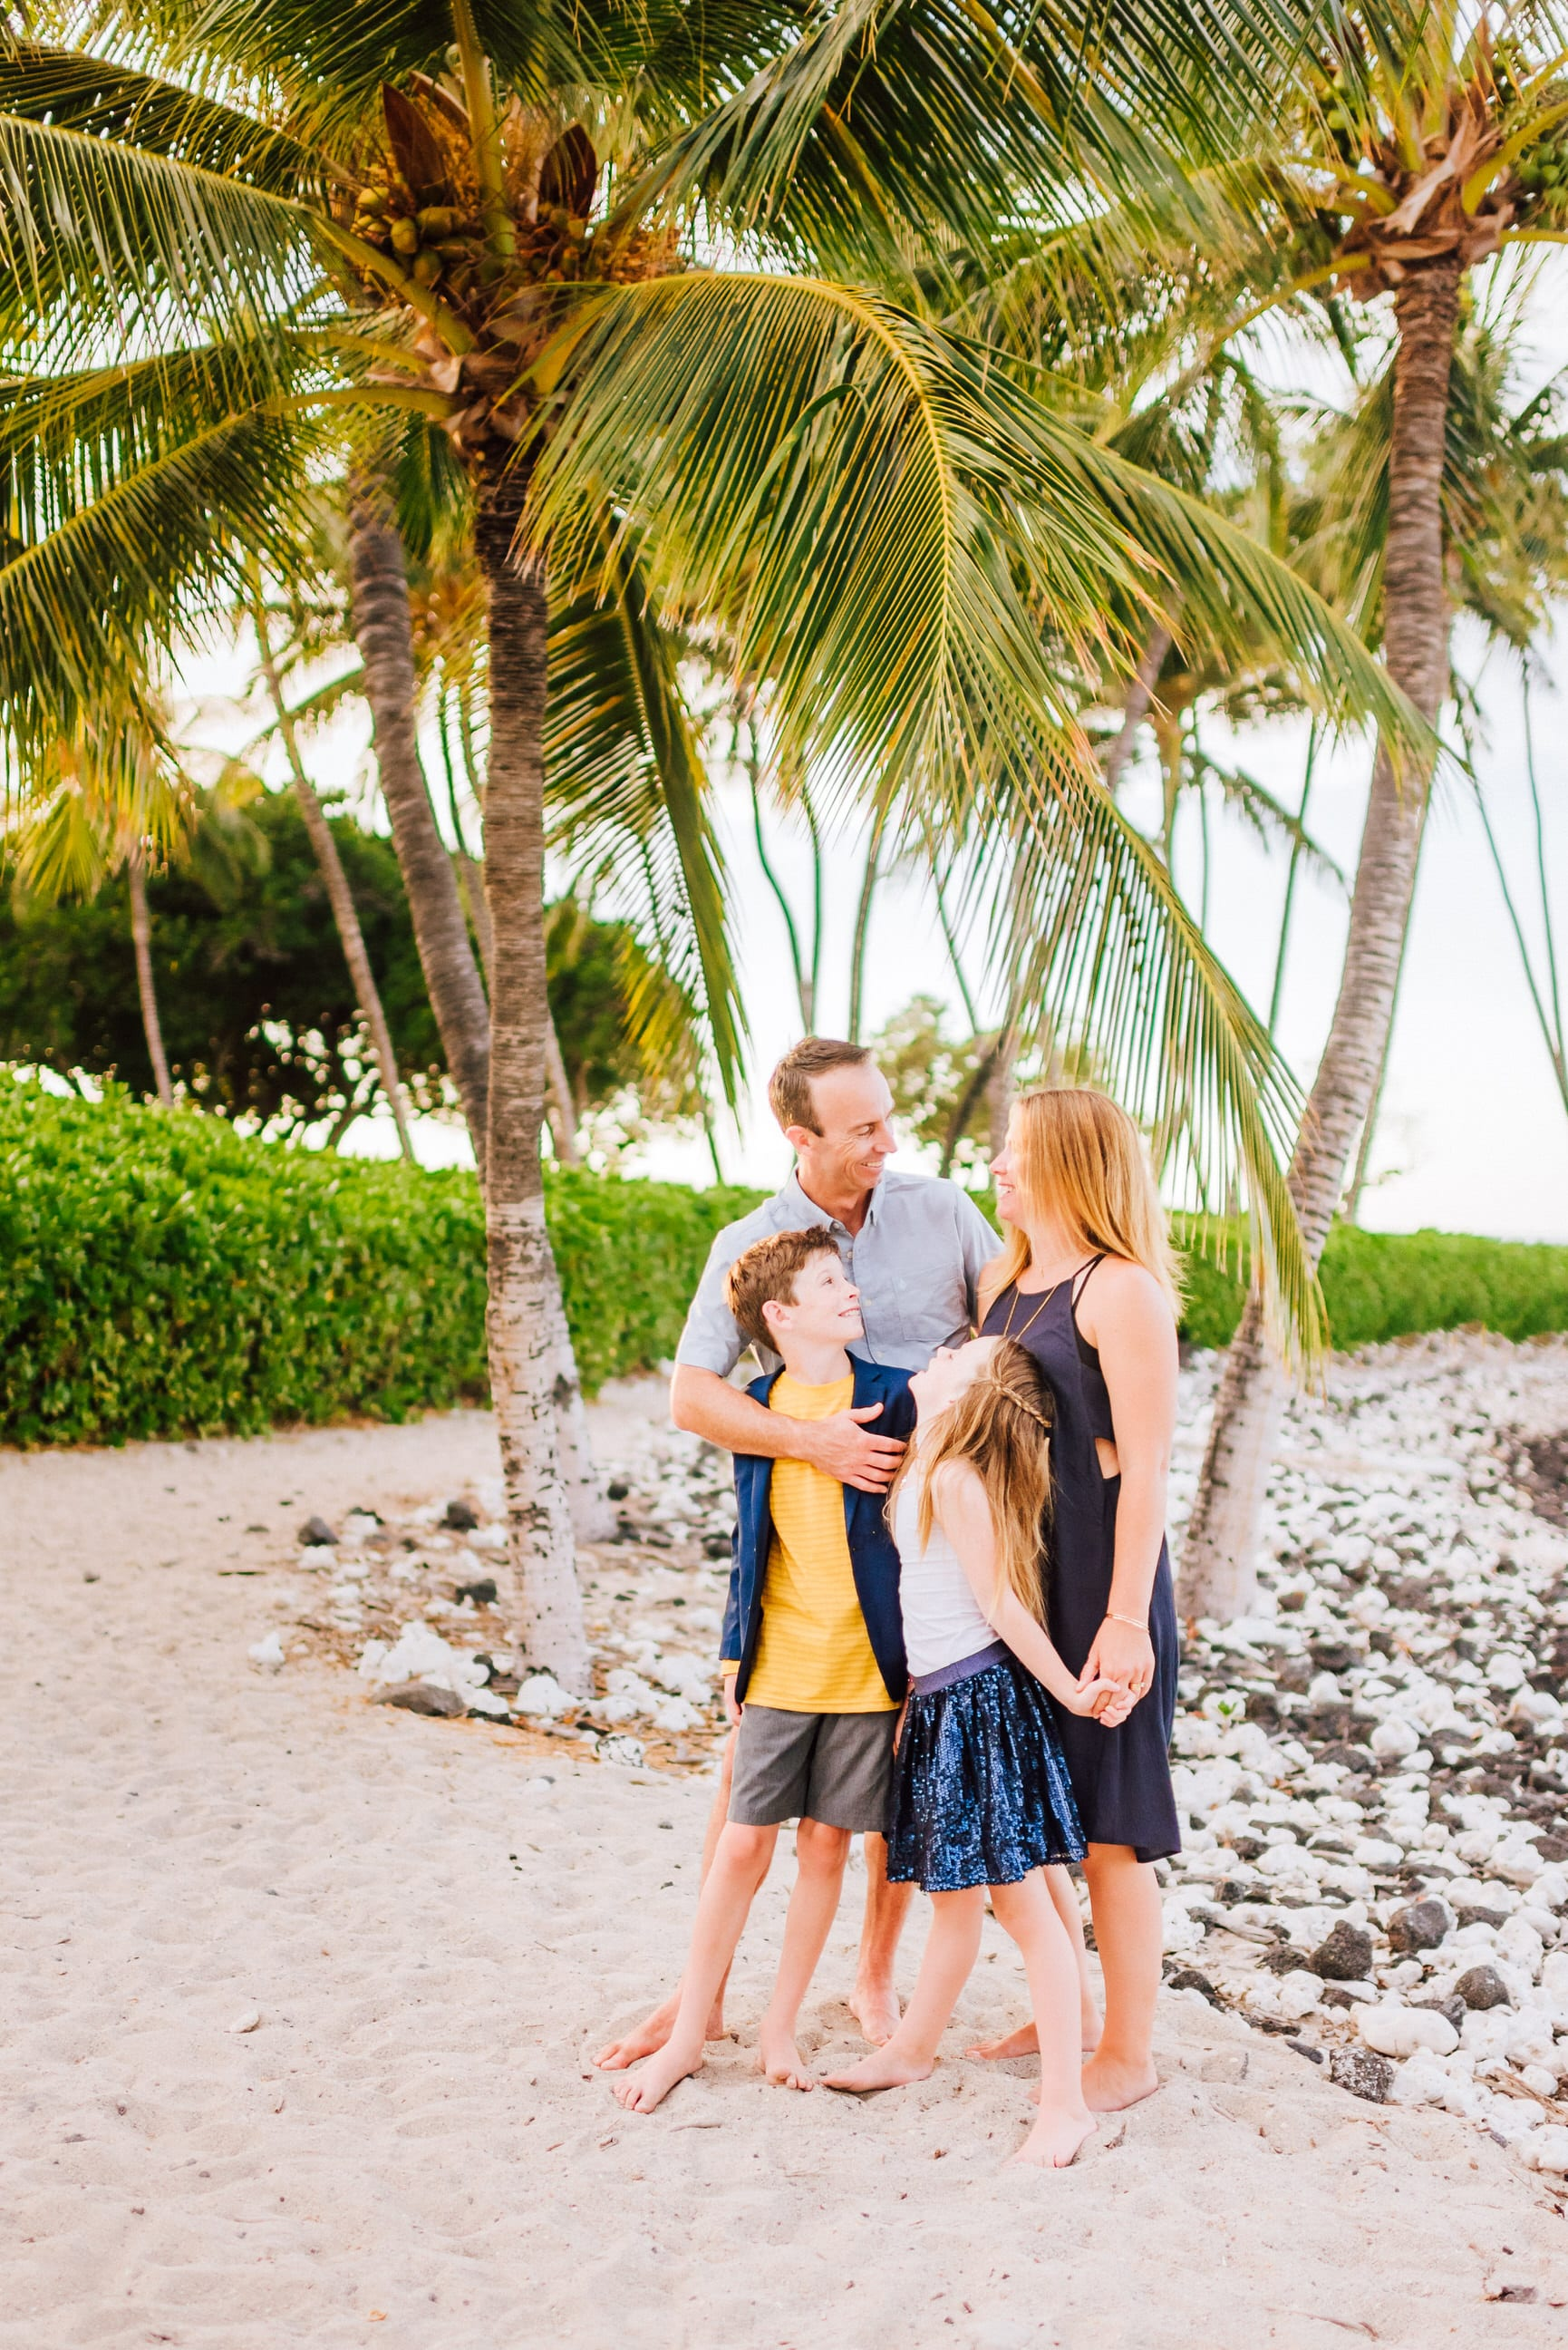 Family-Photographer-Big-Island-Hawaii-26.jpg